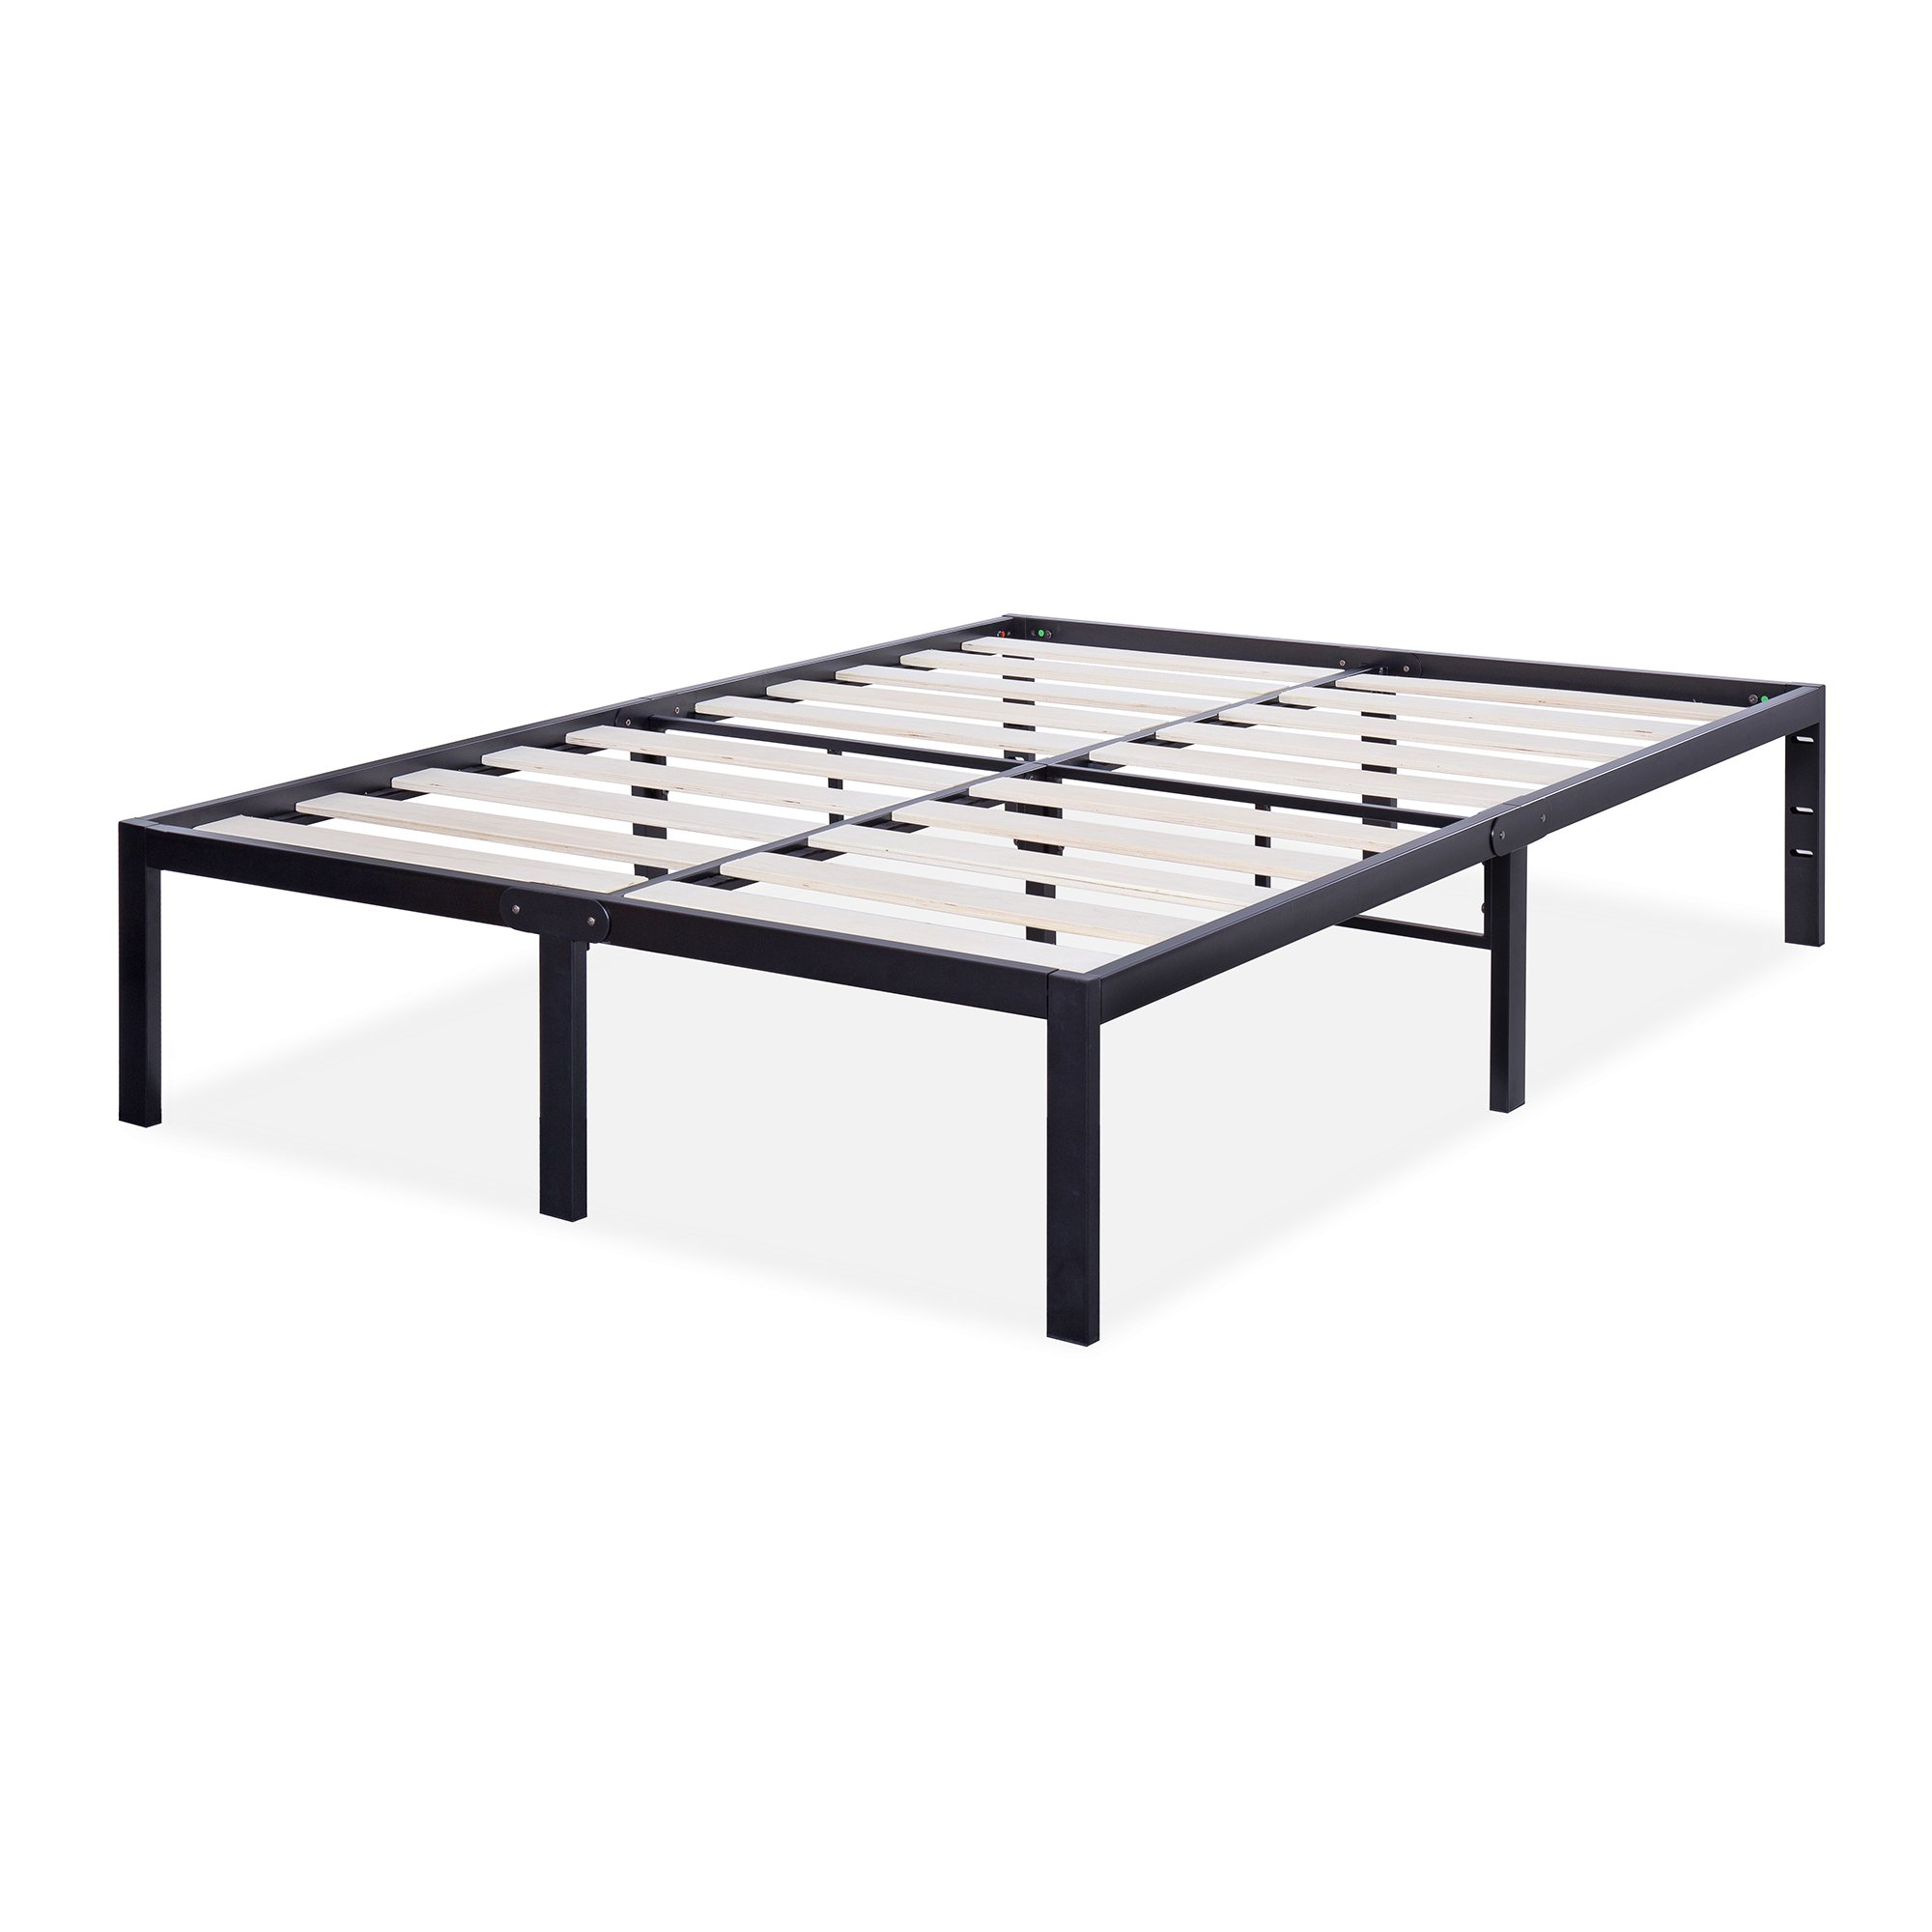 Sleeplace Svc14bf06t 14 Inch St 3000 Ultra 3 Inch Wood Slat Bed Frame Twin Ebay